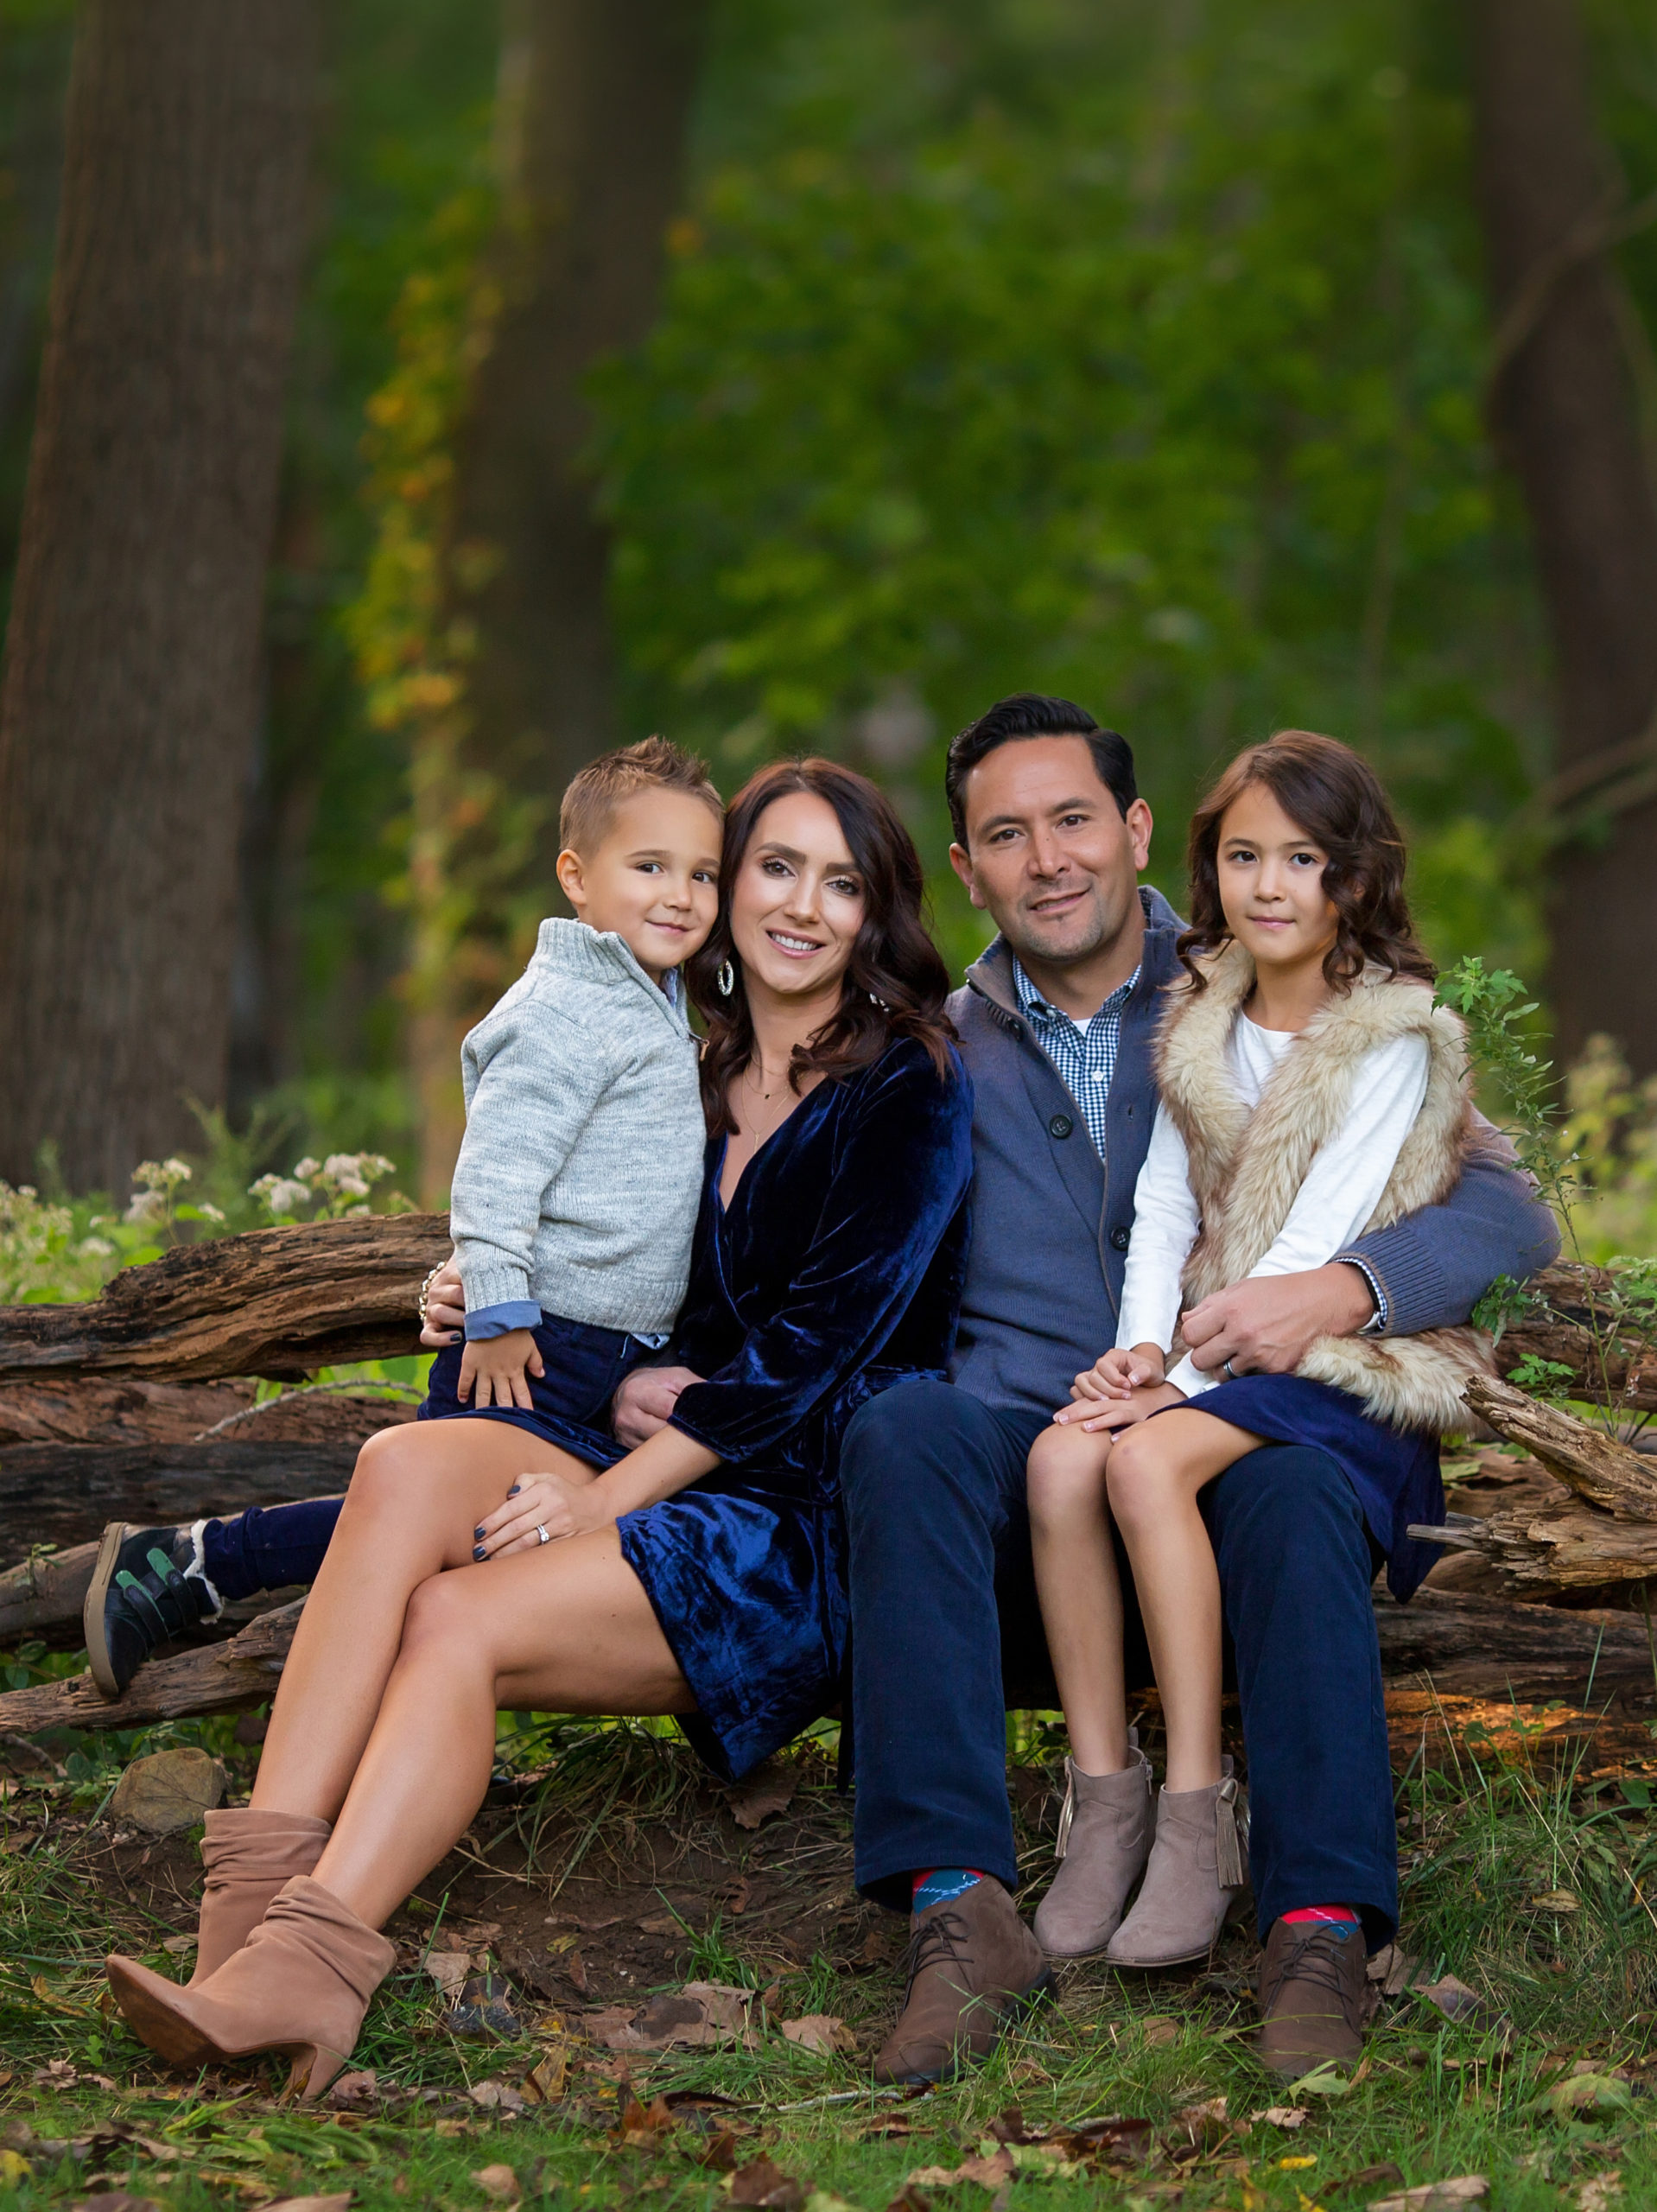 Tips for Family Pictures with Little Kids